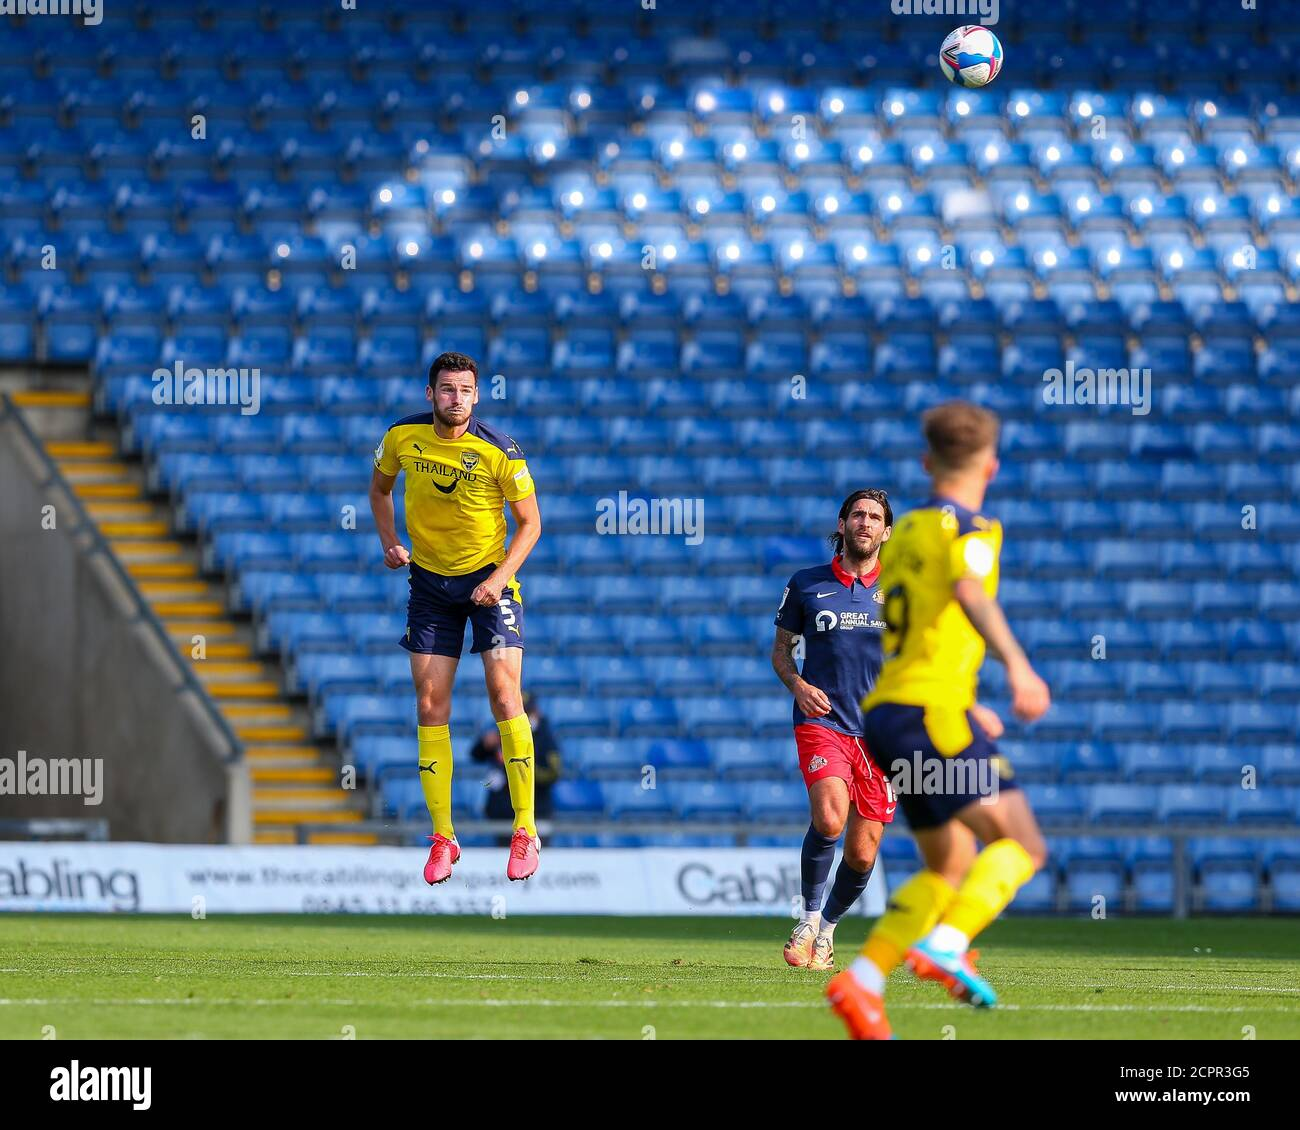 Oxford, UK. 19th Sep, 2020. Oxford United's Elliott Moore heads the ball clear during the Sky Bet League 1 behind closed doors match between Oxford United and Sunderland at the Kassam Stadium, Oxford, England on 19 September 2020. Photo by Nick Browning/PRiME Media Images. Credit: PRiME Media Images/Alamy Live News Stock Photo